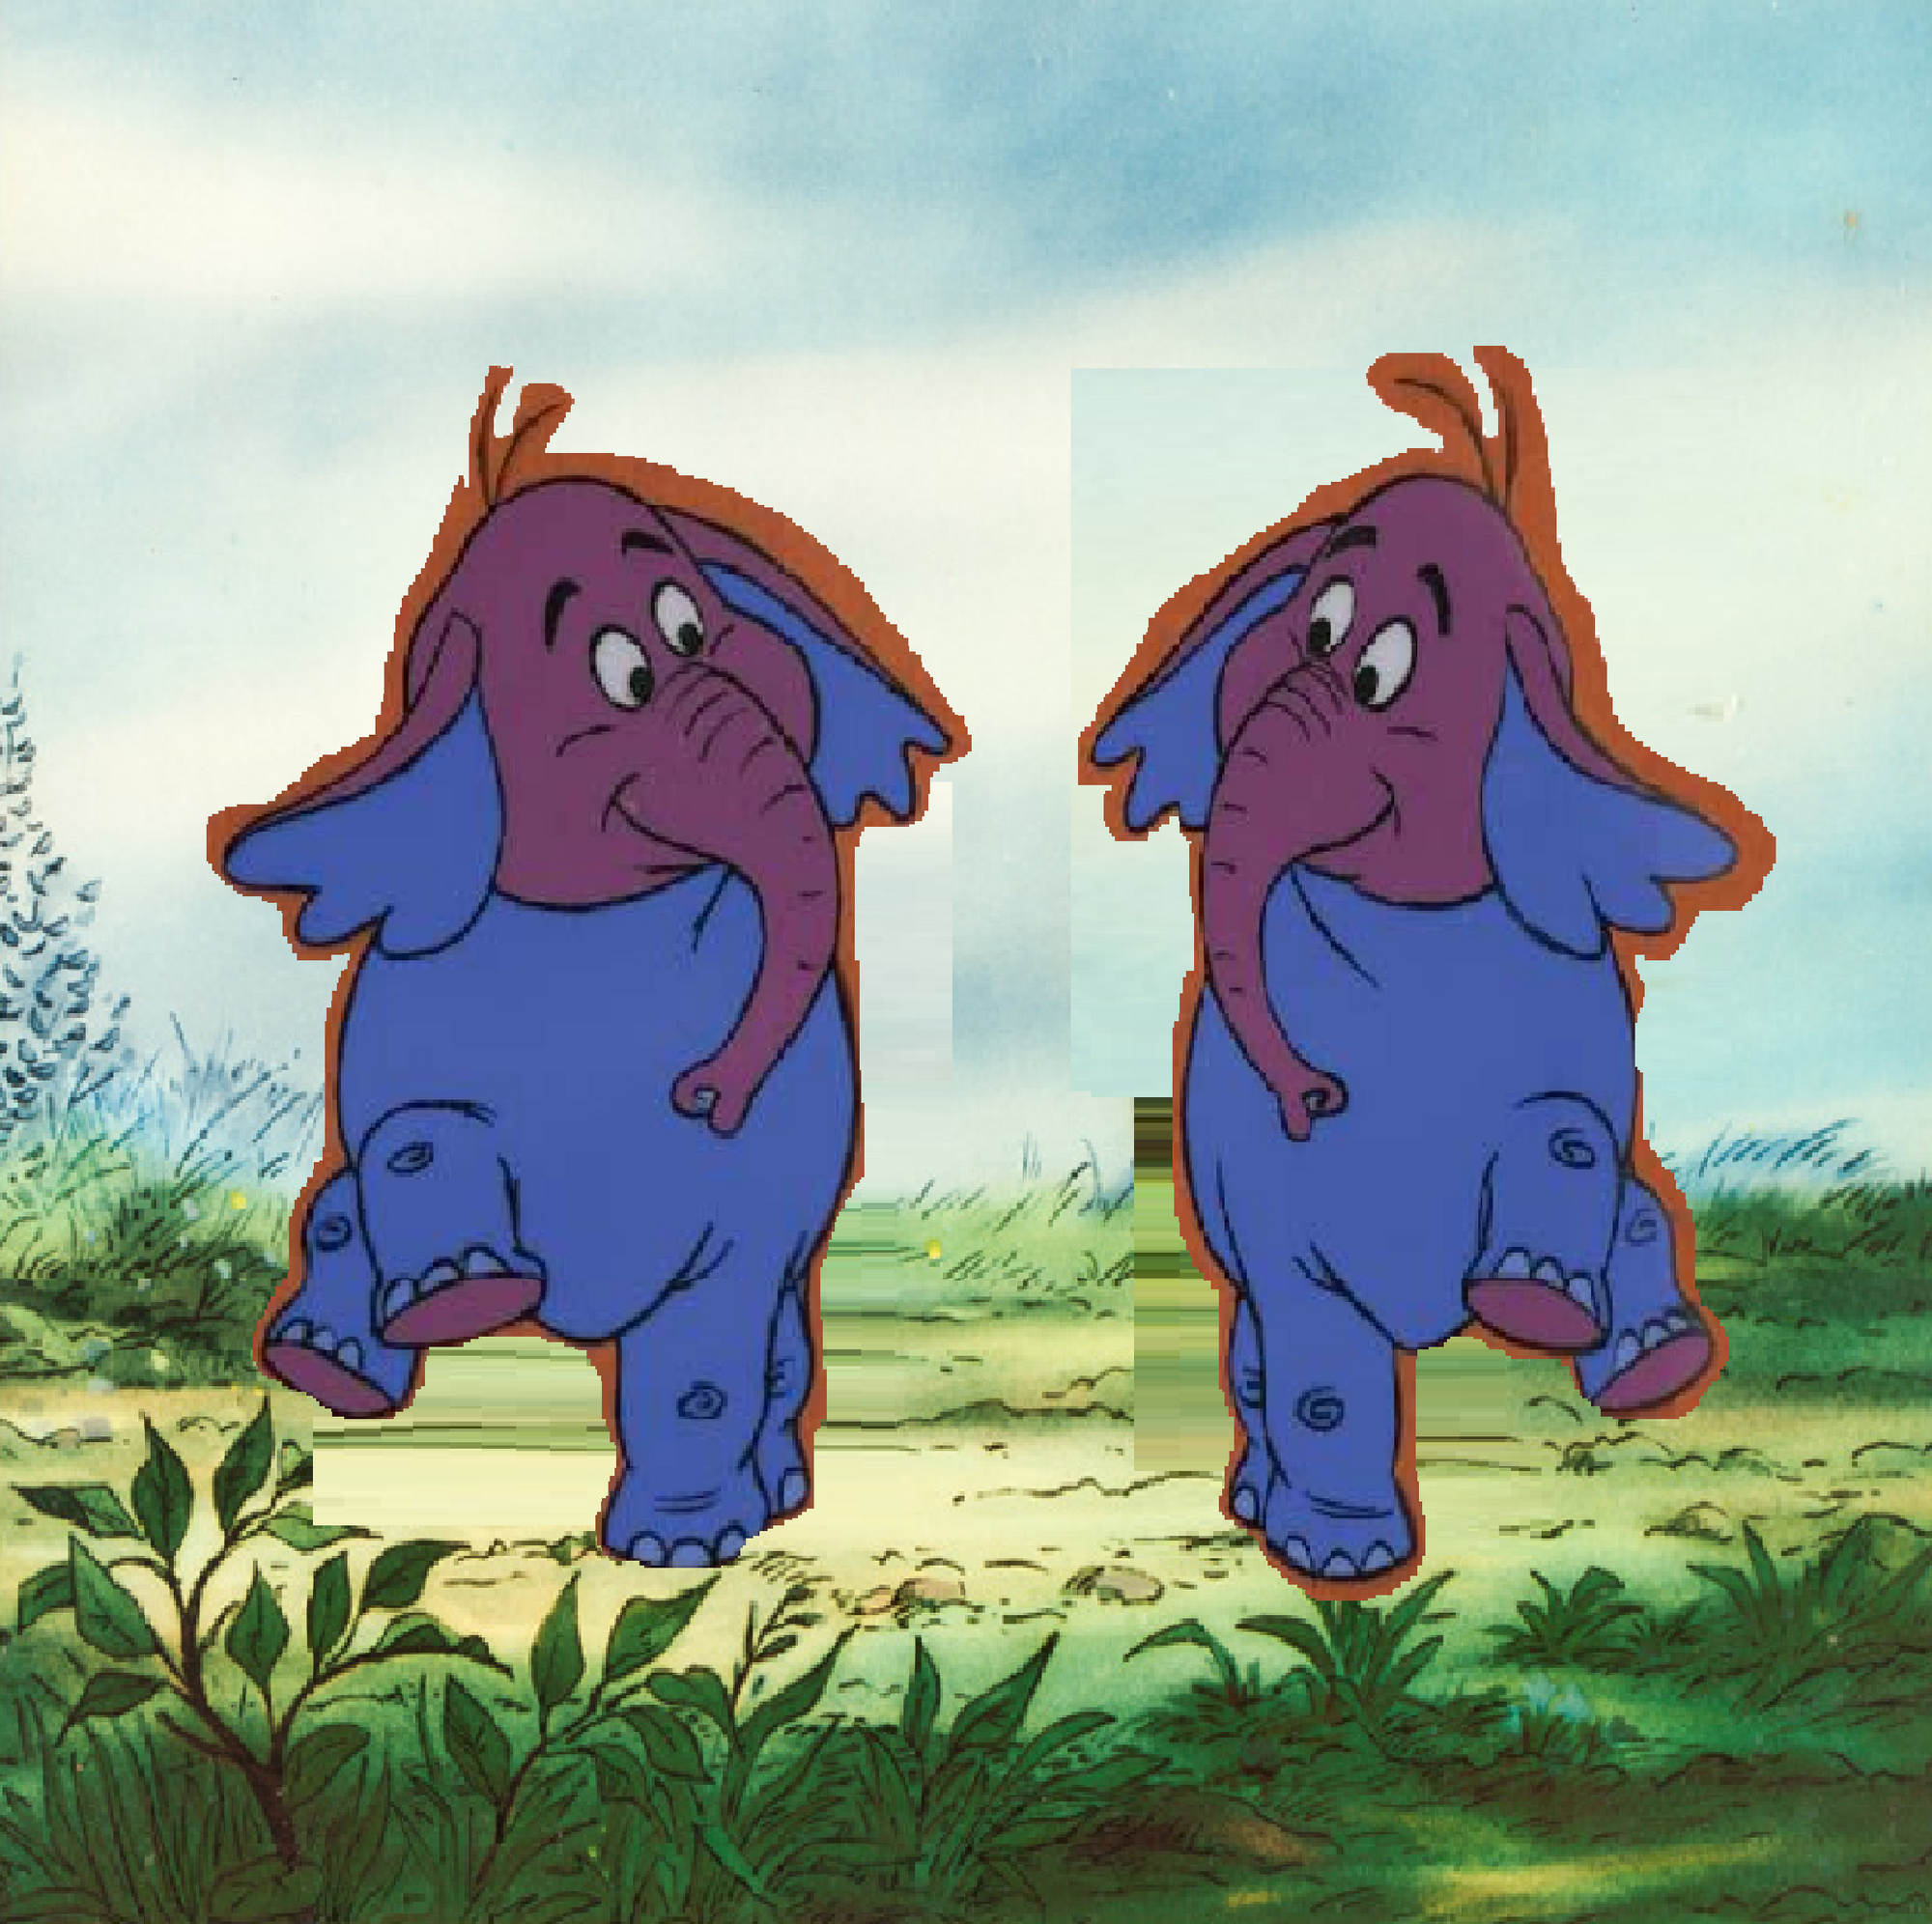 Disney, Winnie The Pooh And The Blustery Day, 1968, Two